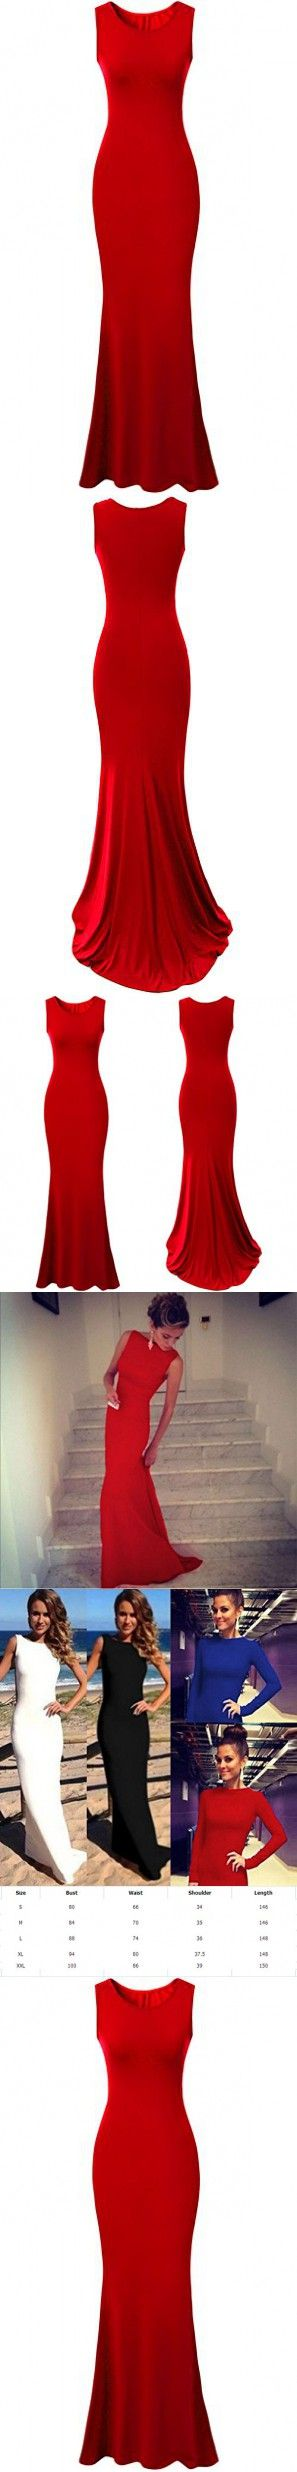 Red Prom Dresses 2015 Long for Juniors Plus Size Women Gown